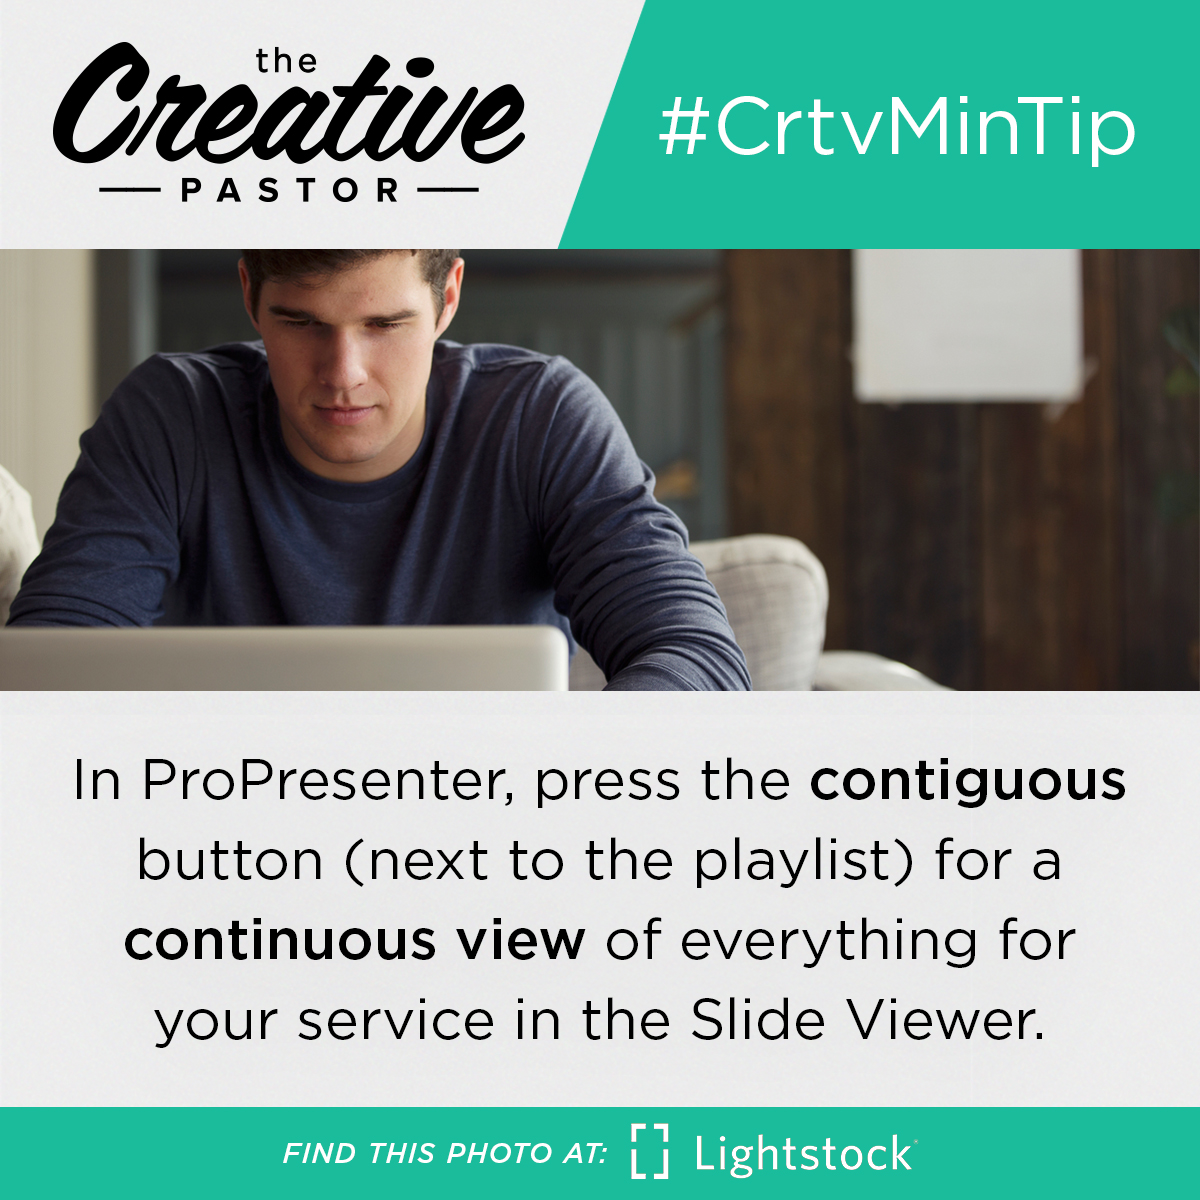 In ProPresenter, press the contiguous button (next to the playlist) for a continuous view of everything for your service in the Slide Viewer.